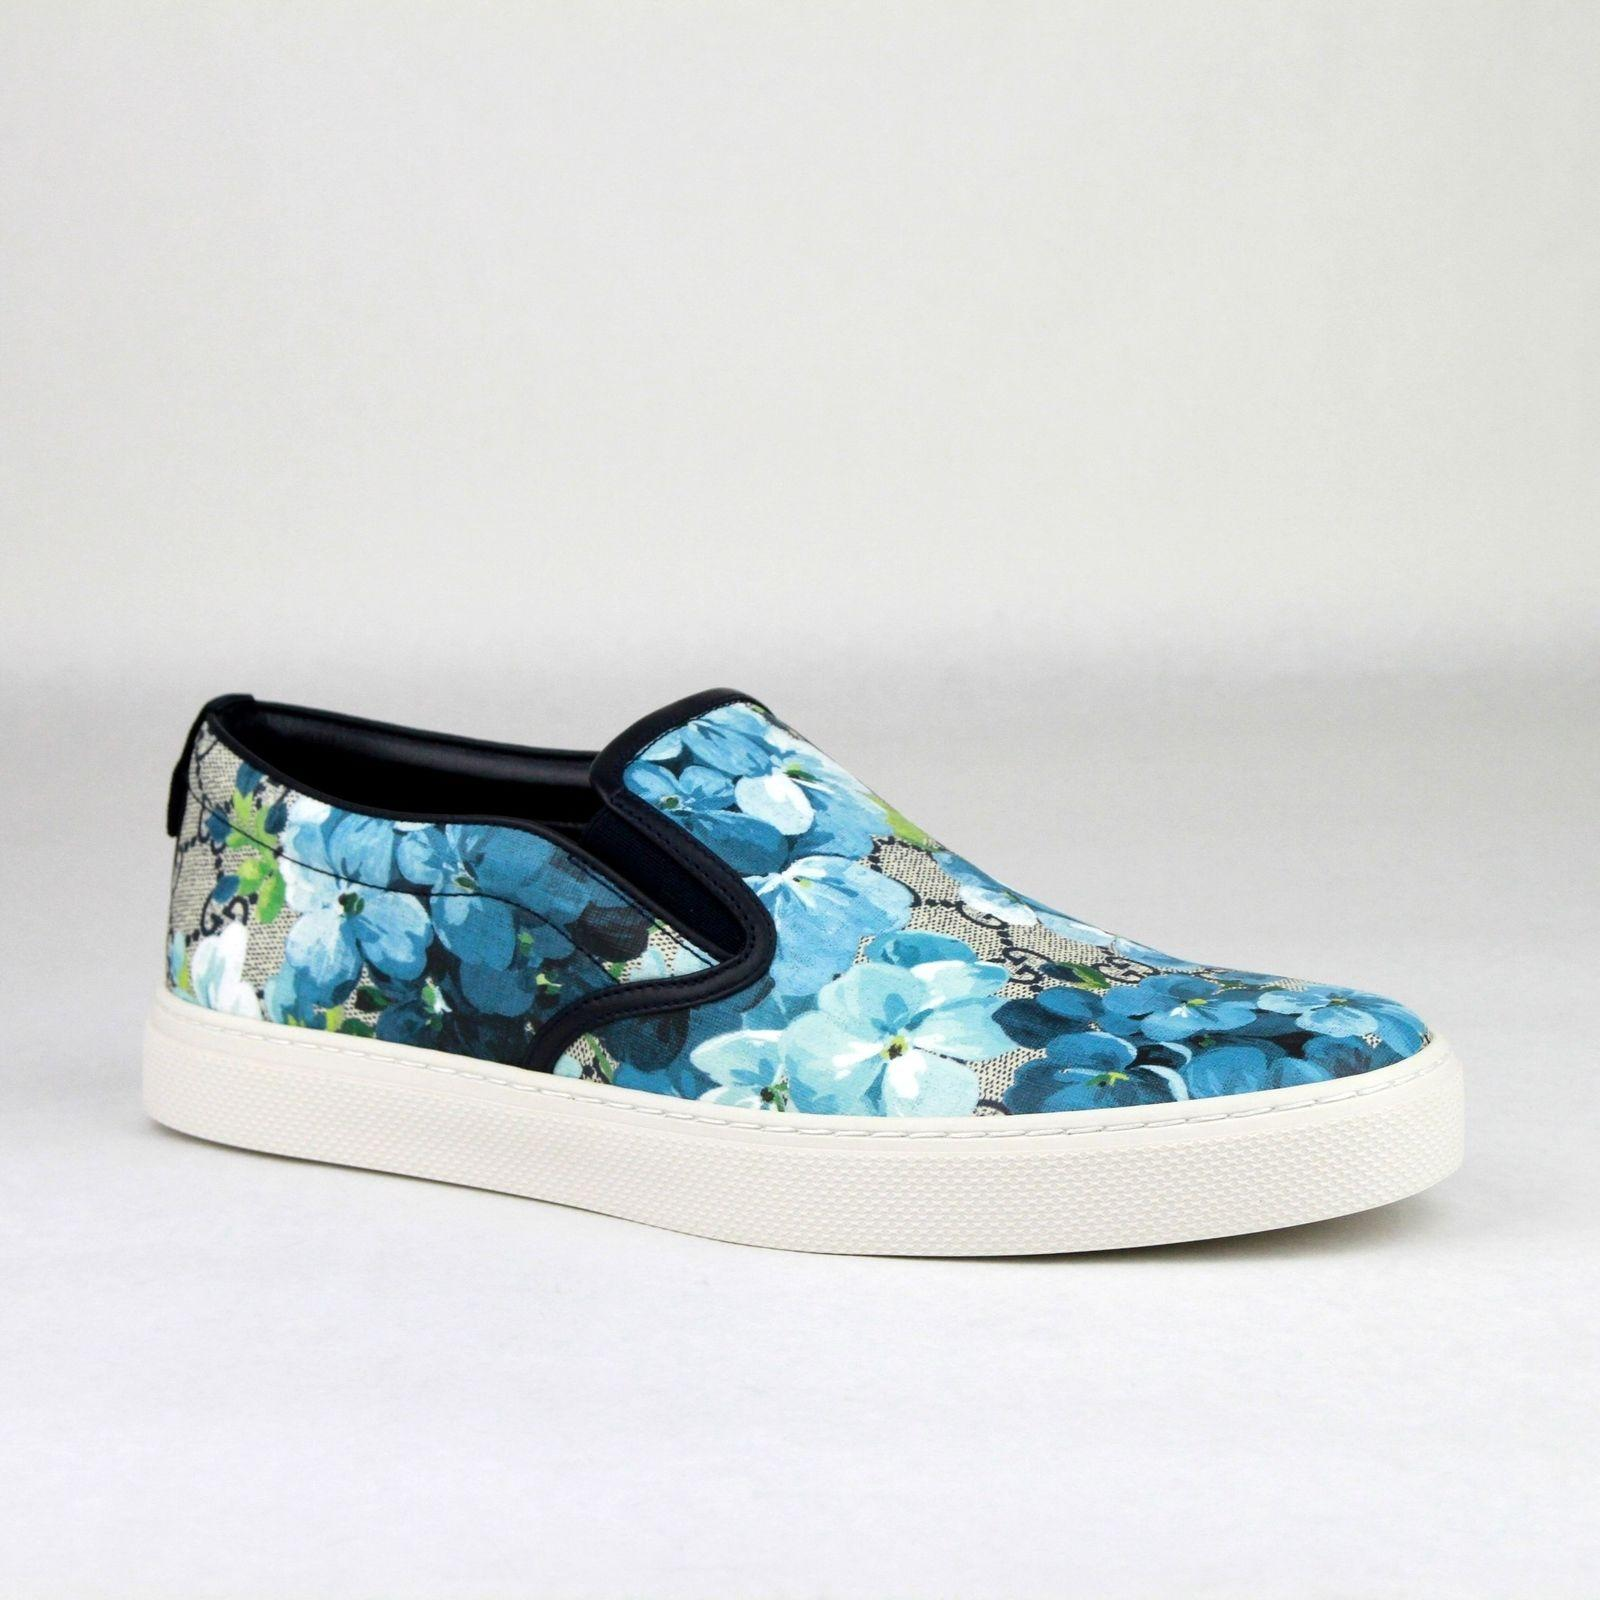 gucci blue men u0026 39 s bloom print flower slip on sneakers 10 5g  11 5 407362 8471 shoes